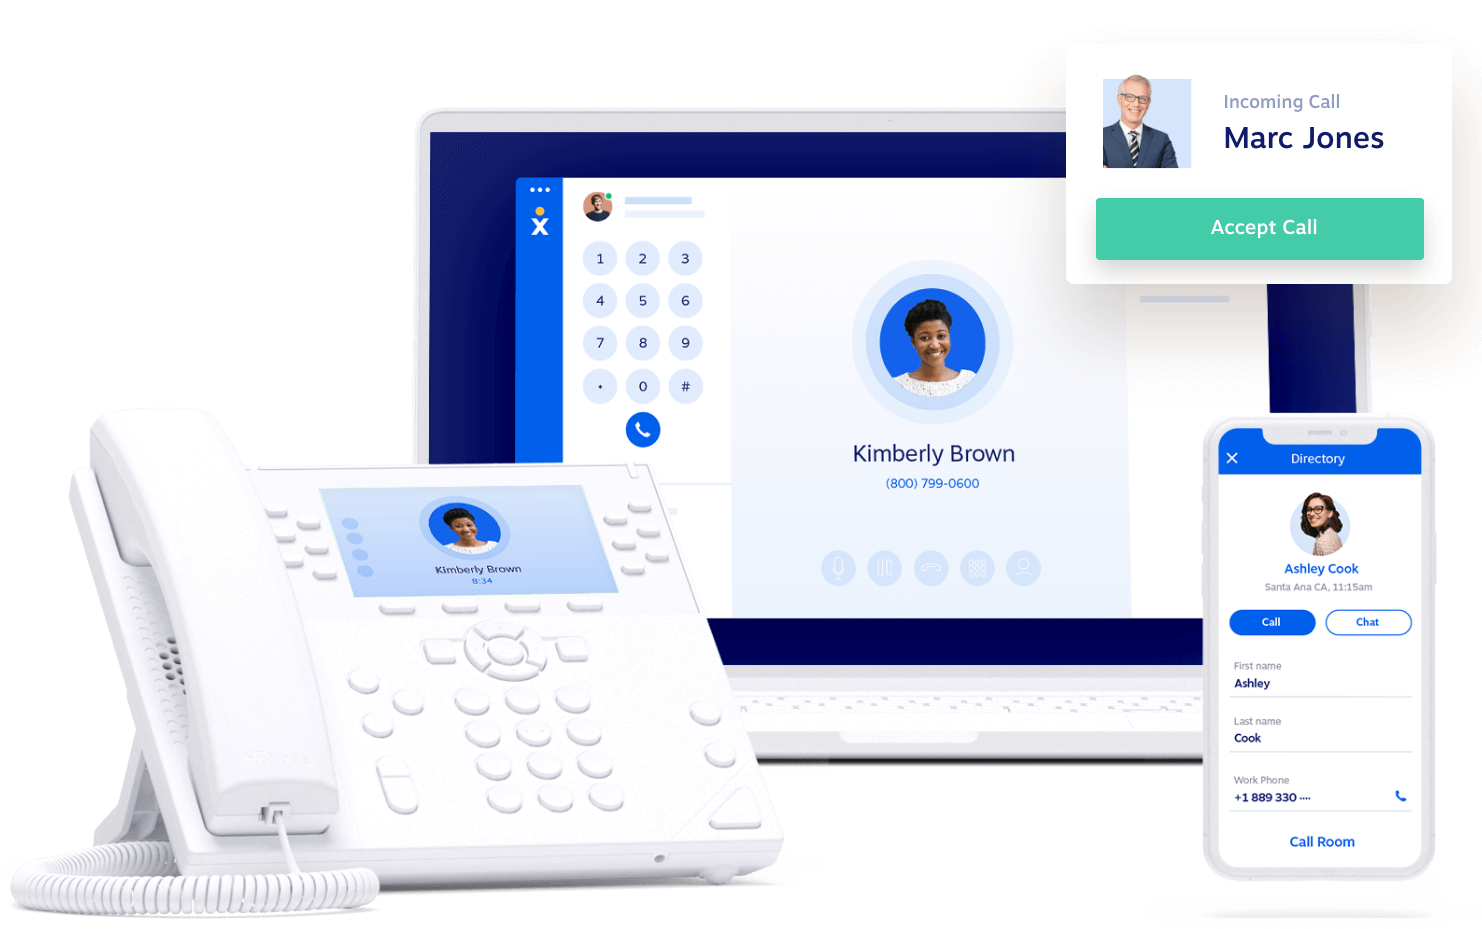 VoIP vs. analog? Nextiva's VoIP phone system is the best choice for today's businesses.